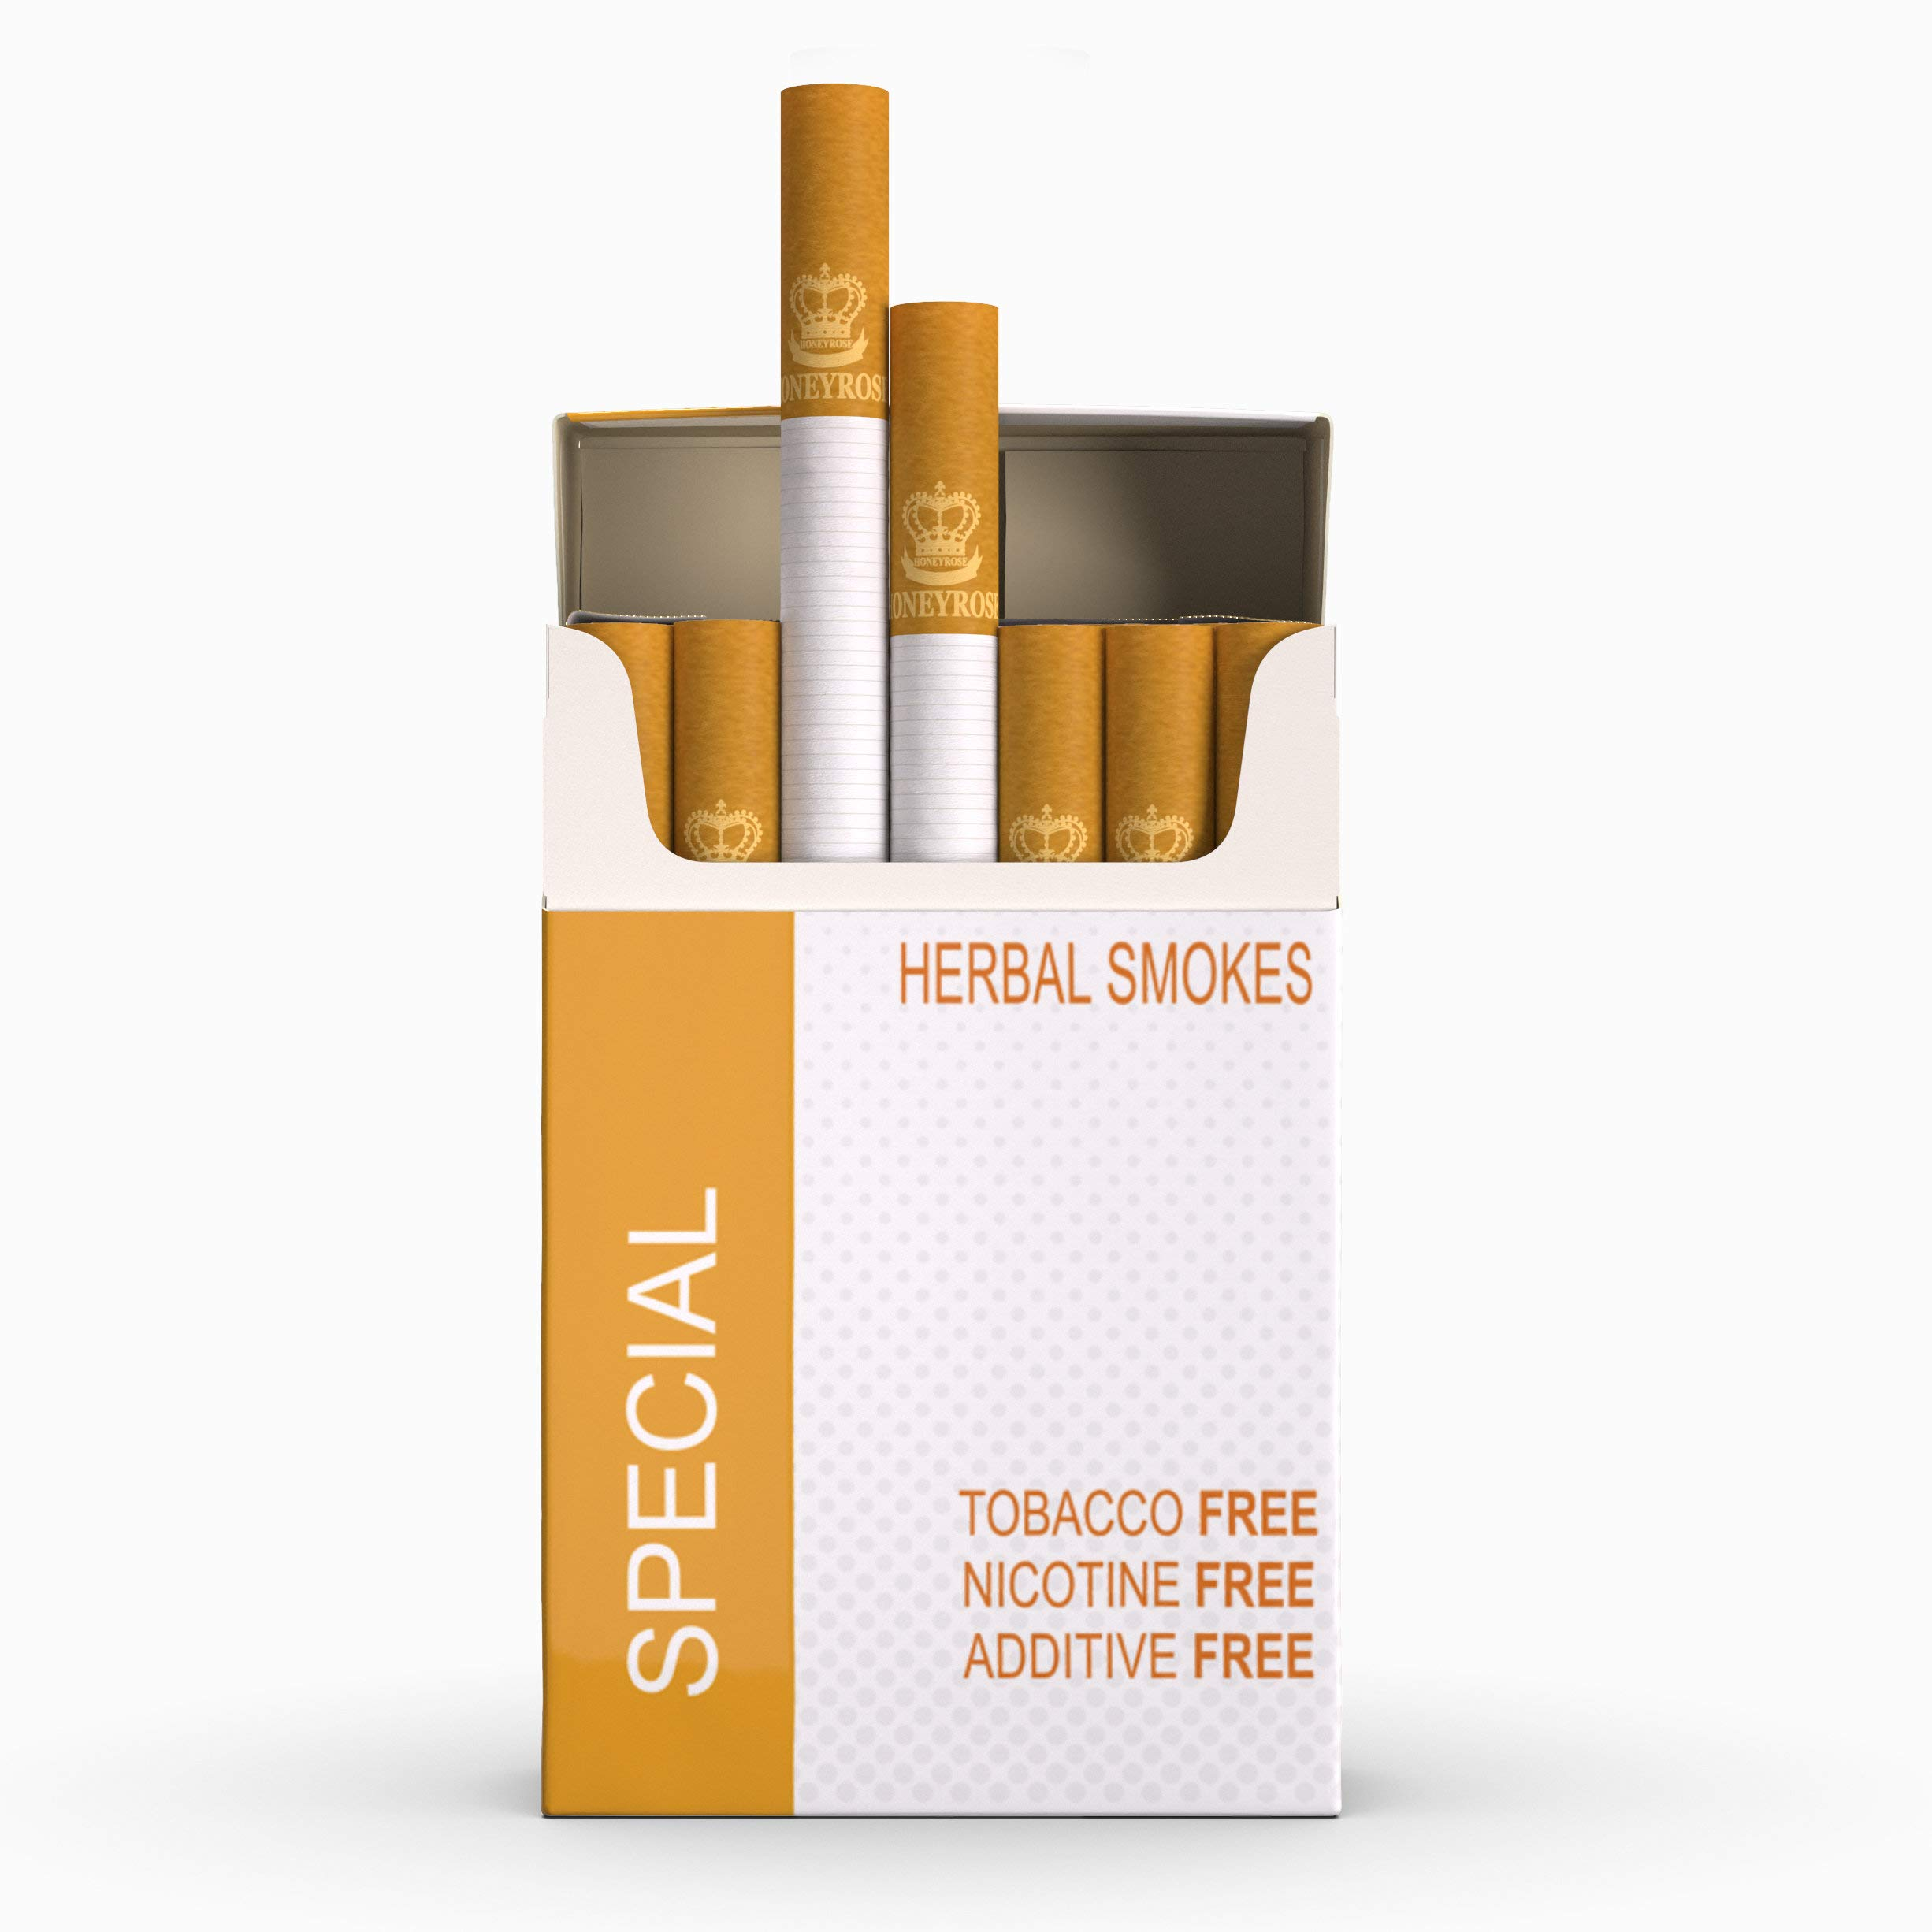 Honeyrose Special - Tobacco & Nicotine Free Herbal Cigarettes, 100% Natural, Made in England